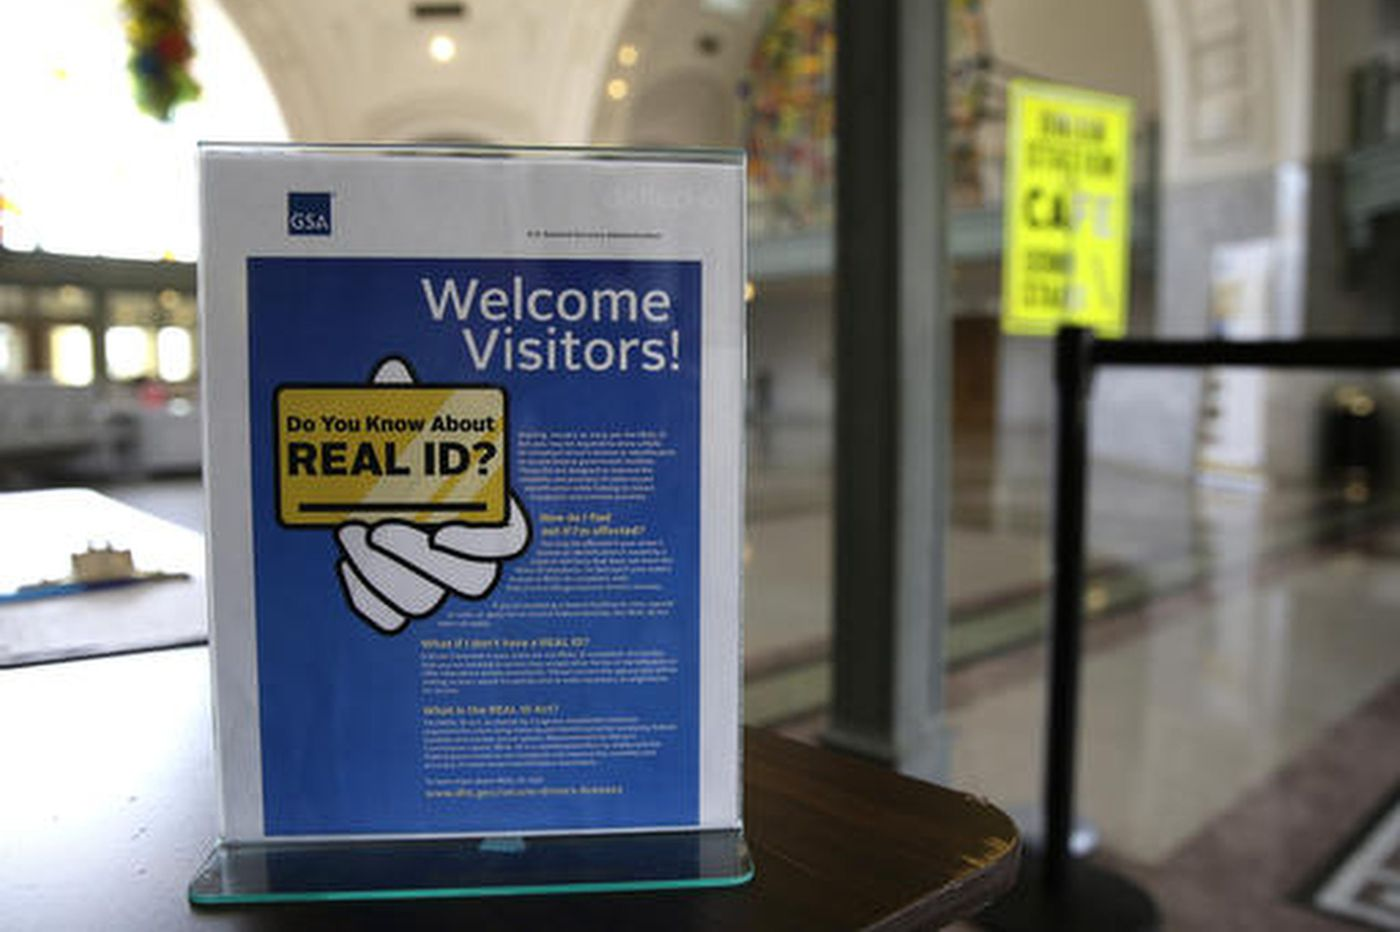 REAL IDs are available in Pennsylvania, as state seeks to comply with federal security requirements